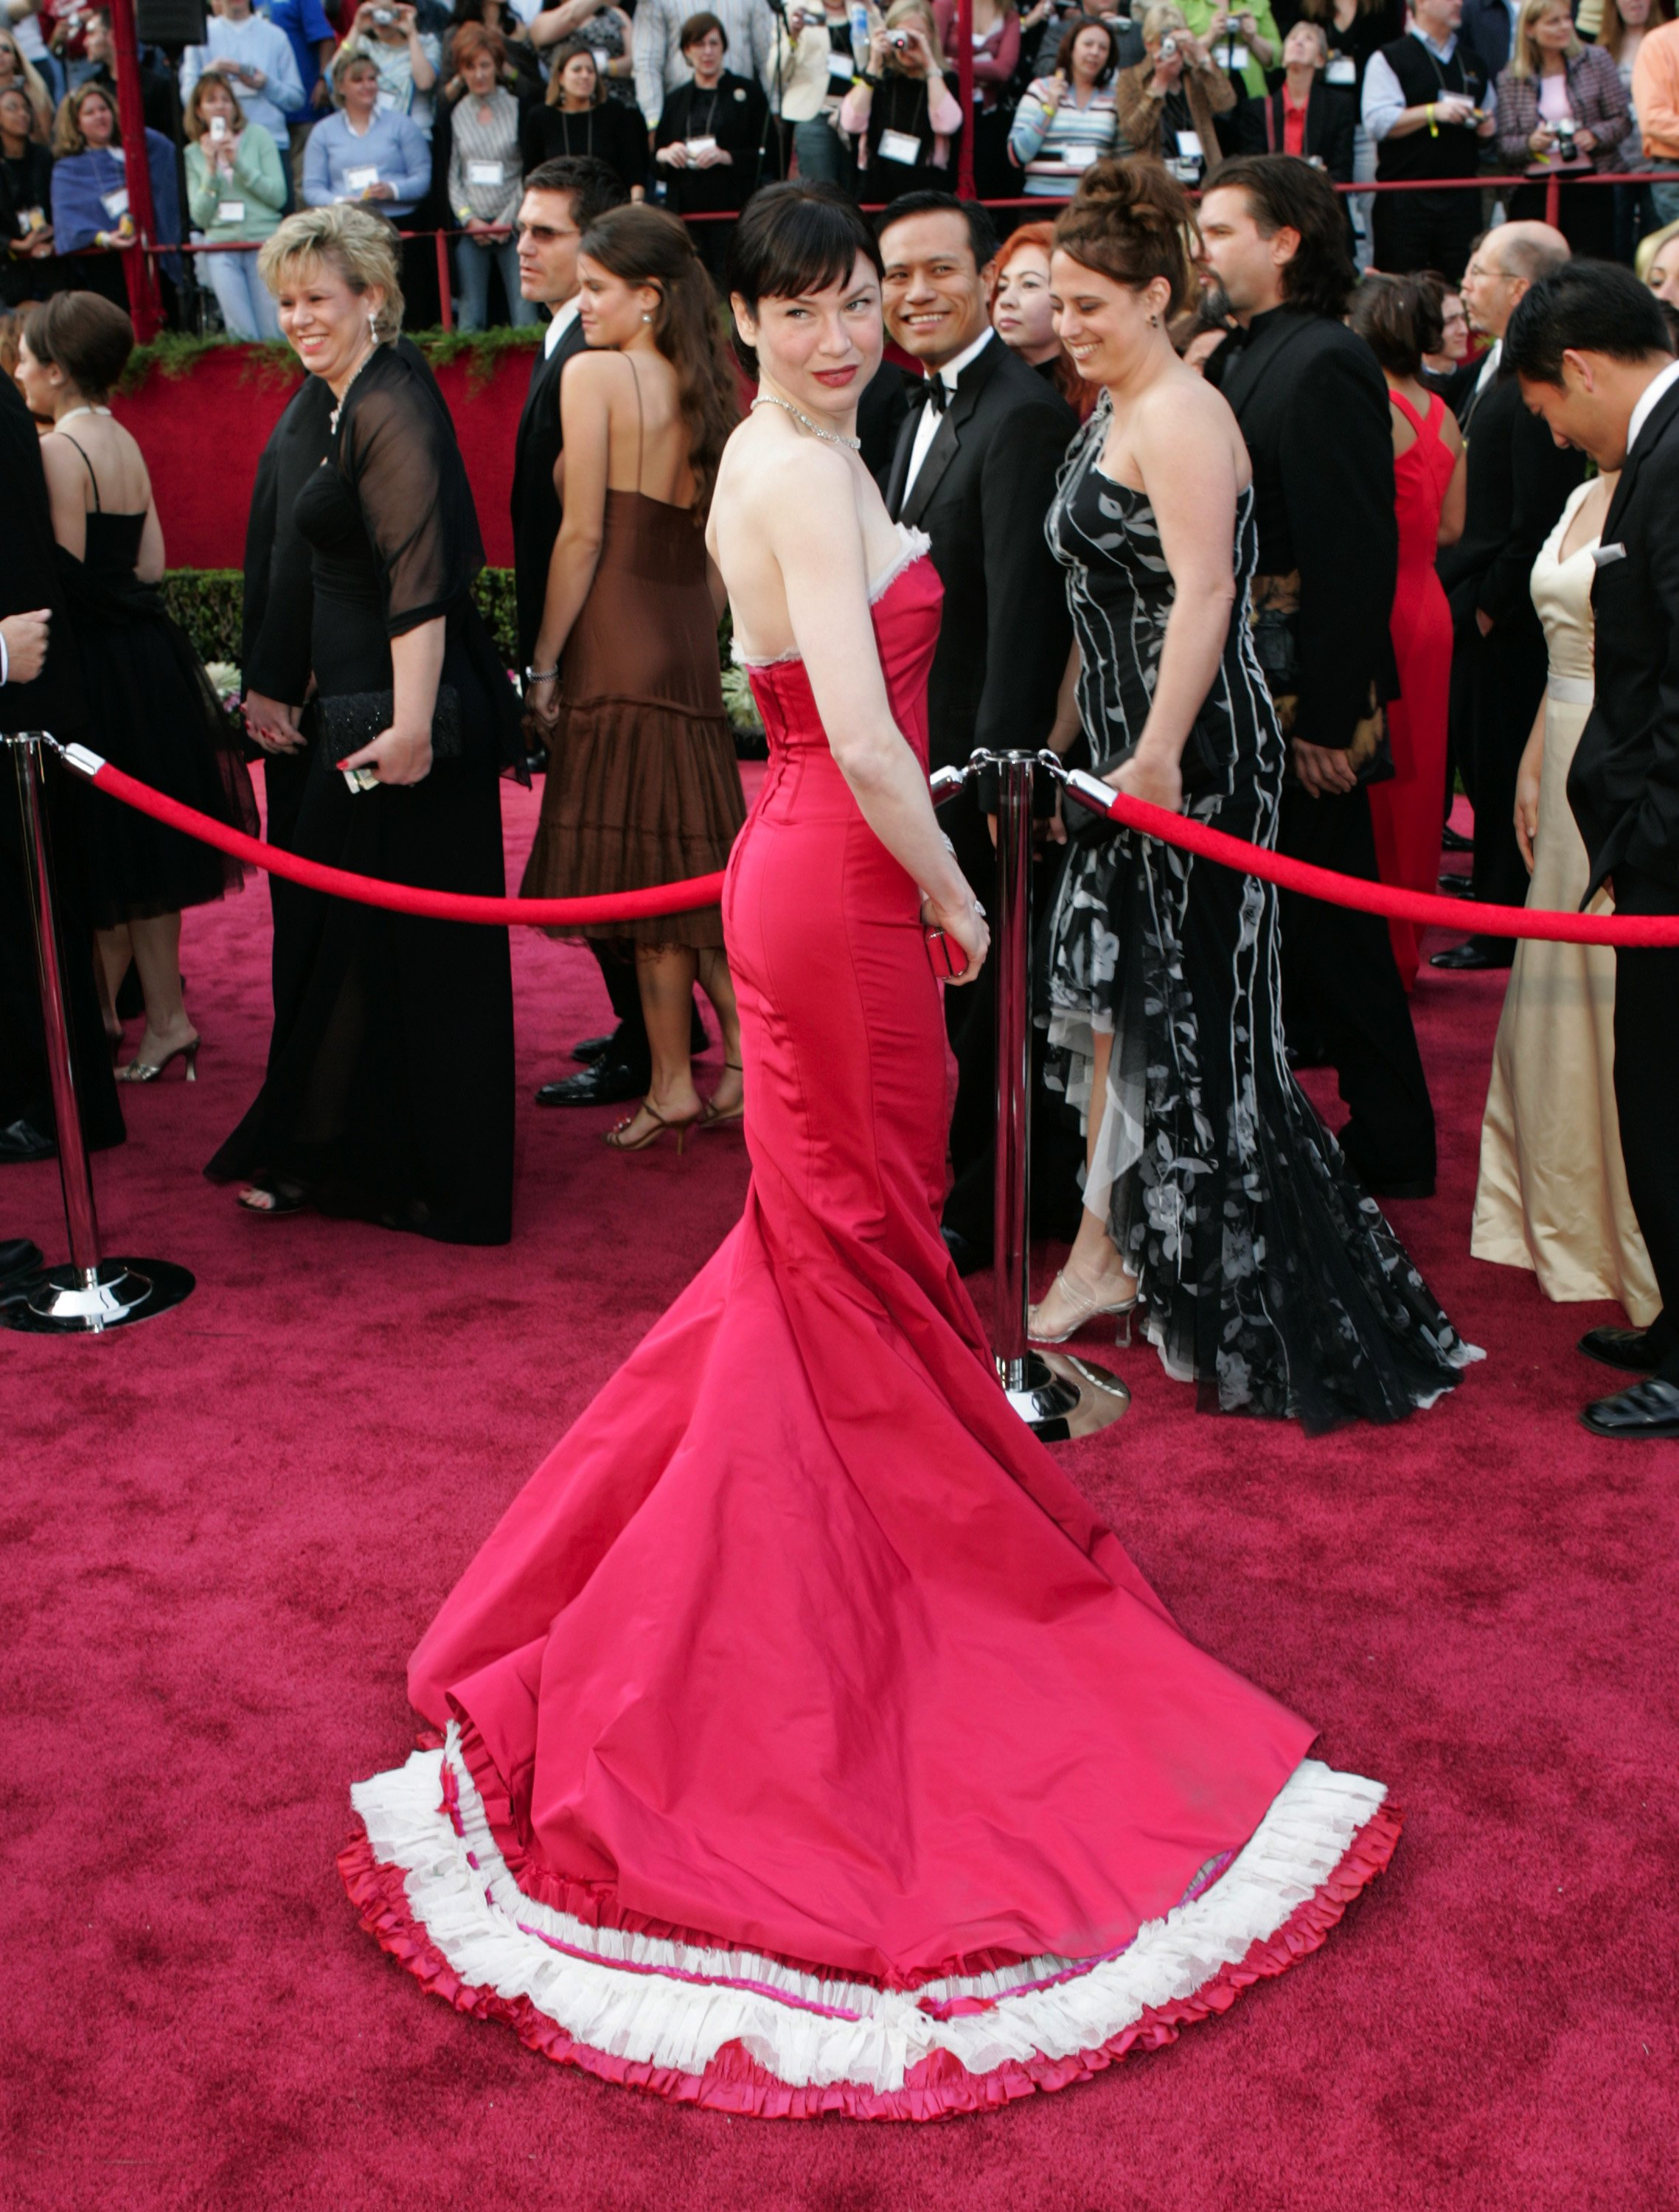 Renee Zellweger (wearing a Carolina Herrera dress and Cartier jewelry) on the red carpet at the 77TH ANNUAL ACADEMY AWARDS, Kodak Theatre, Los Angeles, CA, February 27, 2005., Image: 97160057, License: Rights-managed, Restrictions: For usage credit please use; ©ABC/Courtesy Everett Collection, Model Release: no, Credit line: Profimedia, Everett